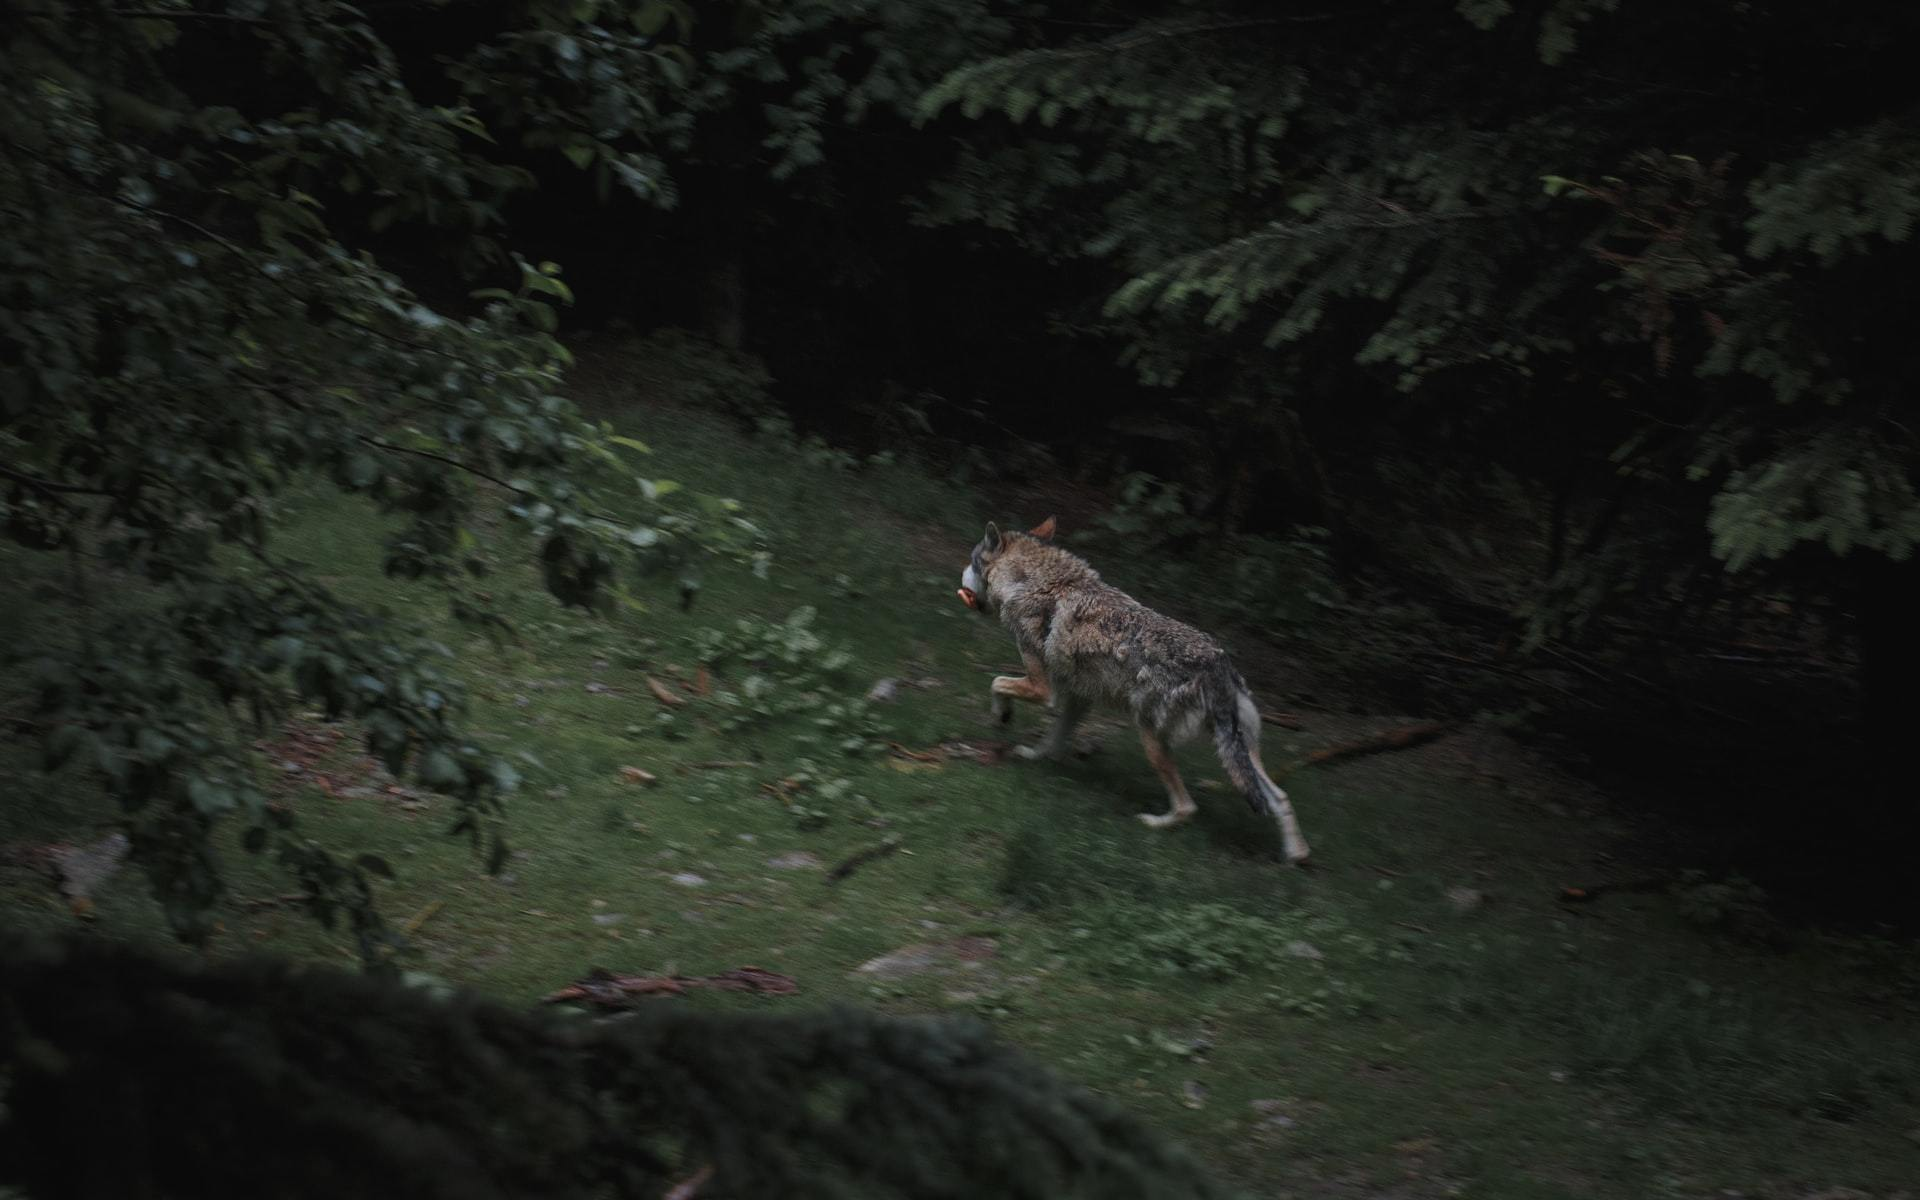 A wolf with something in its mouth running through a dark forest